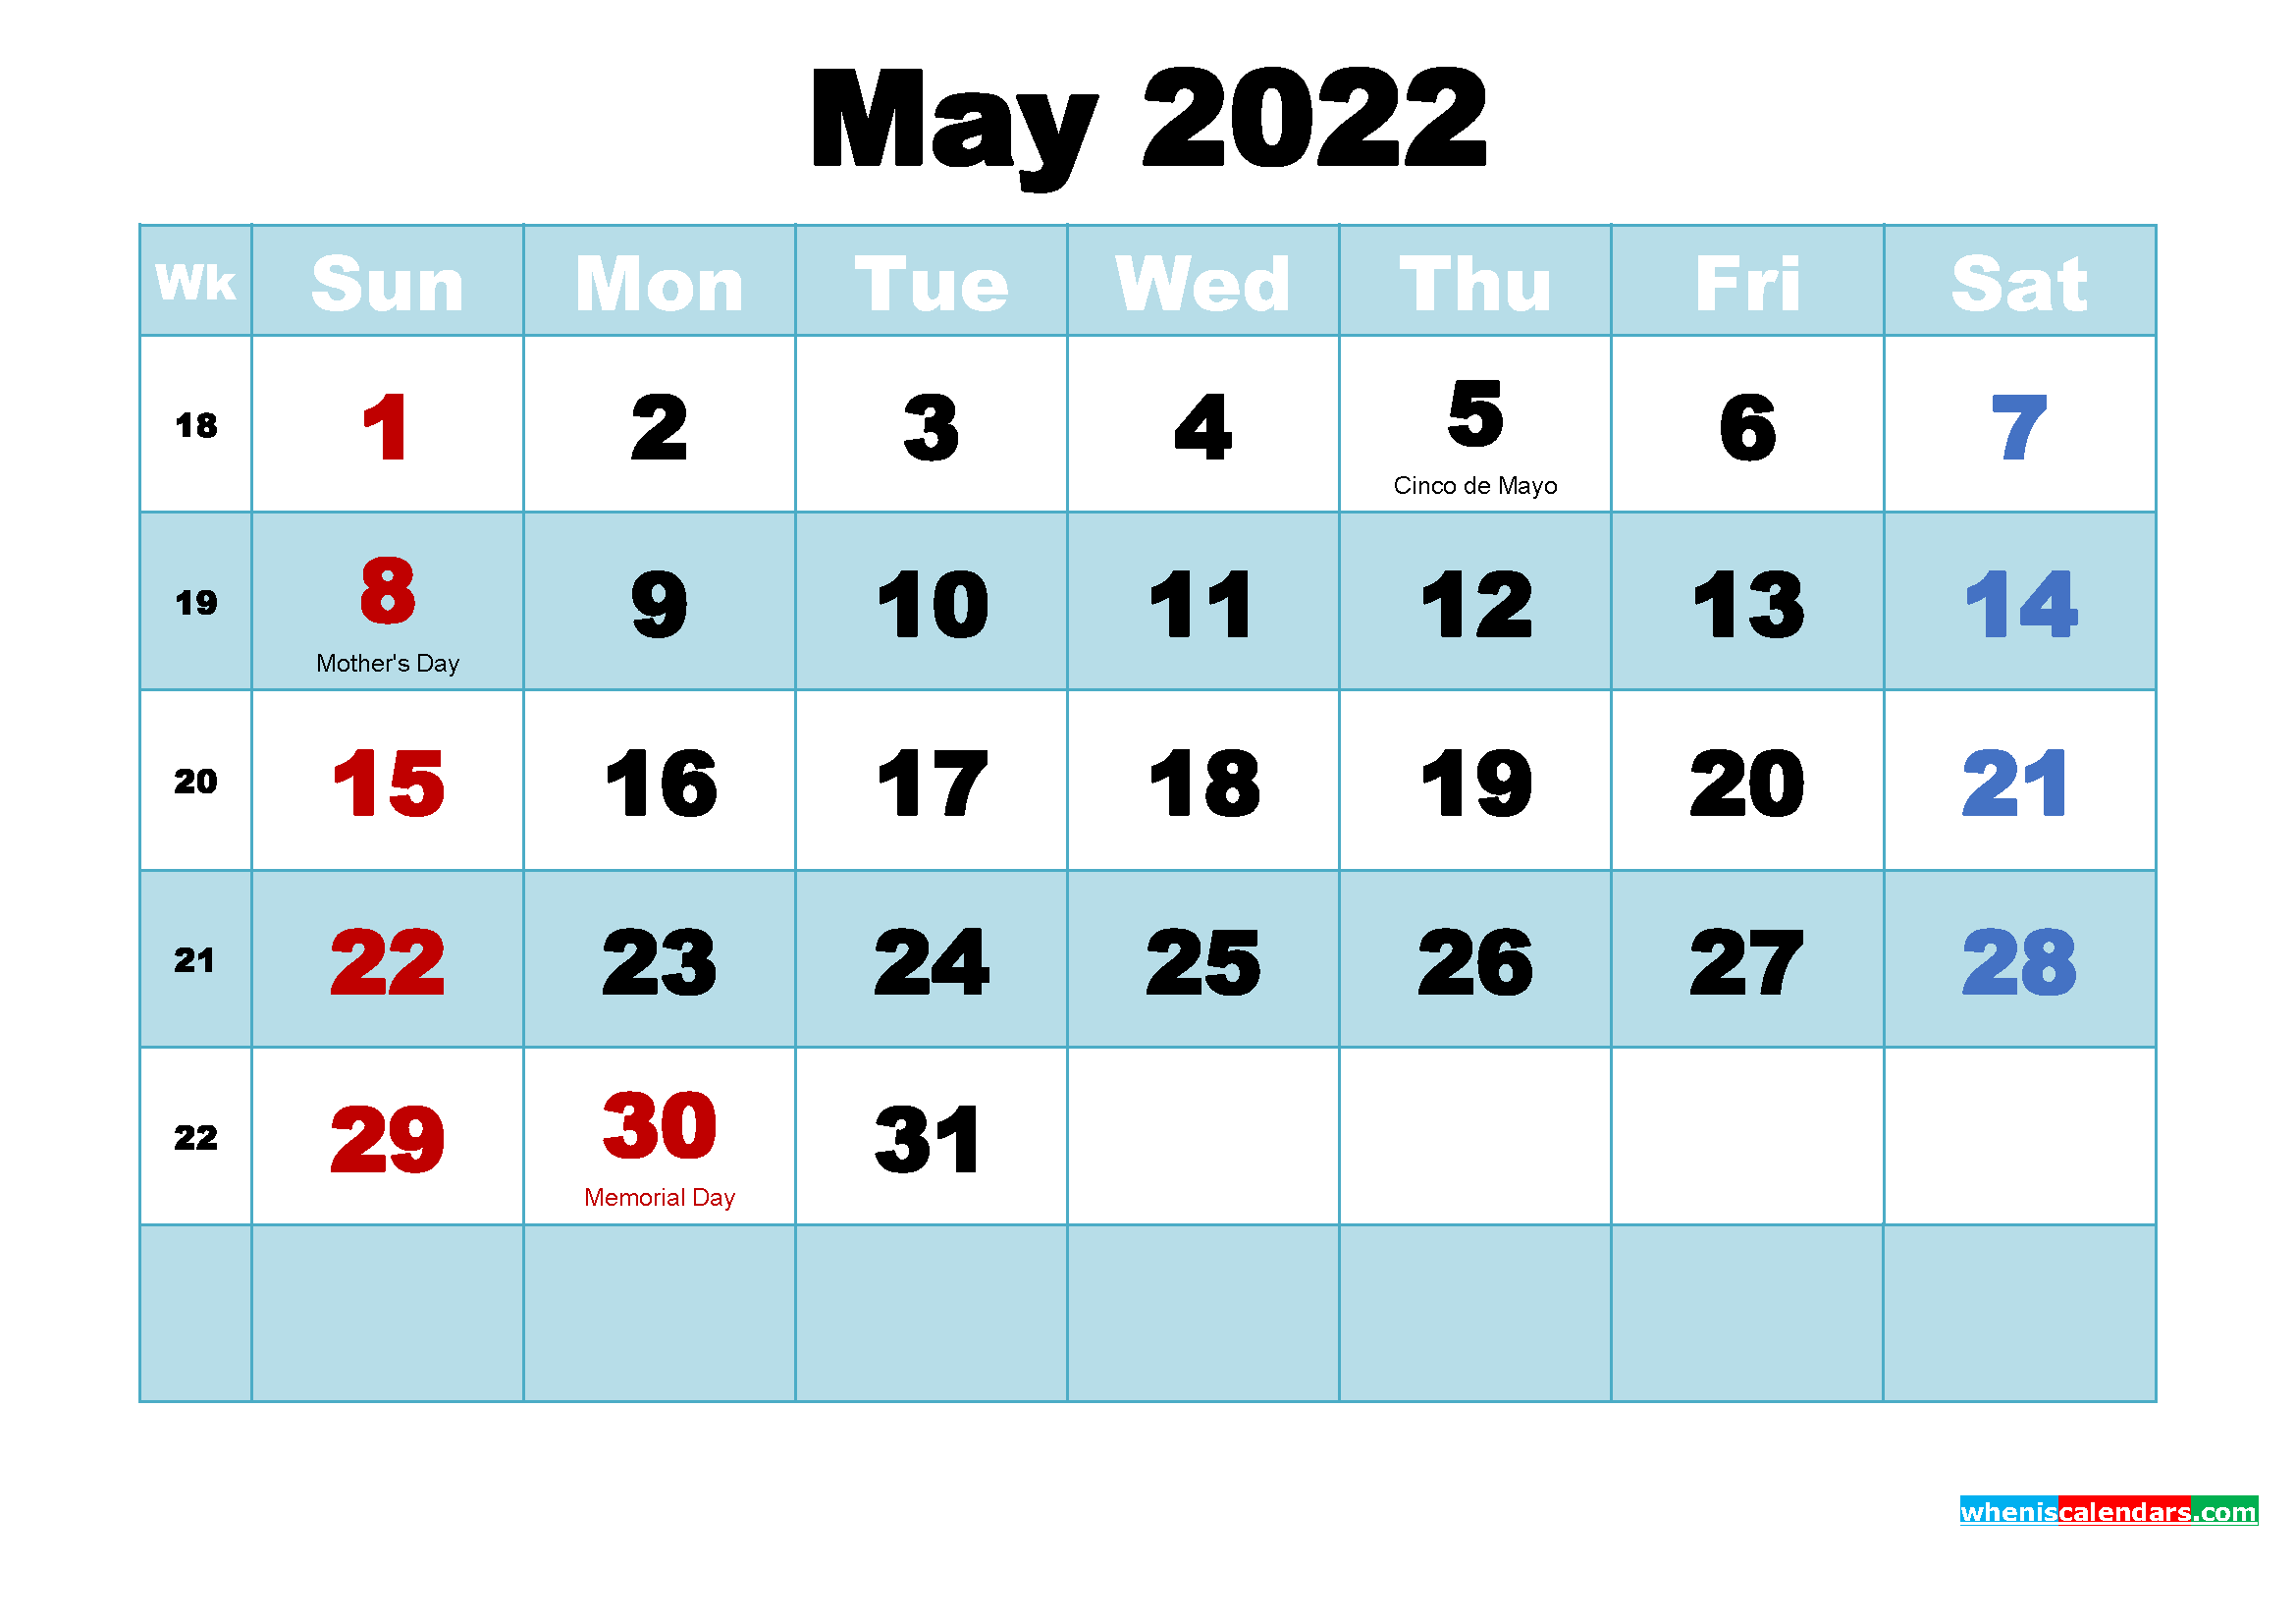 May 2022 Desktop Calendar with Holidays